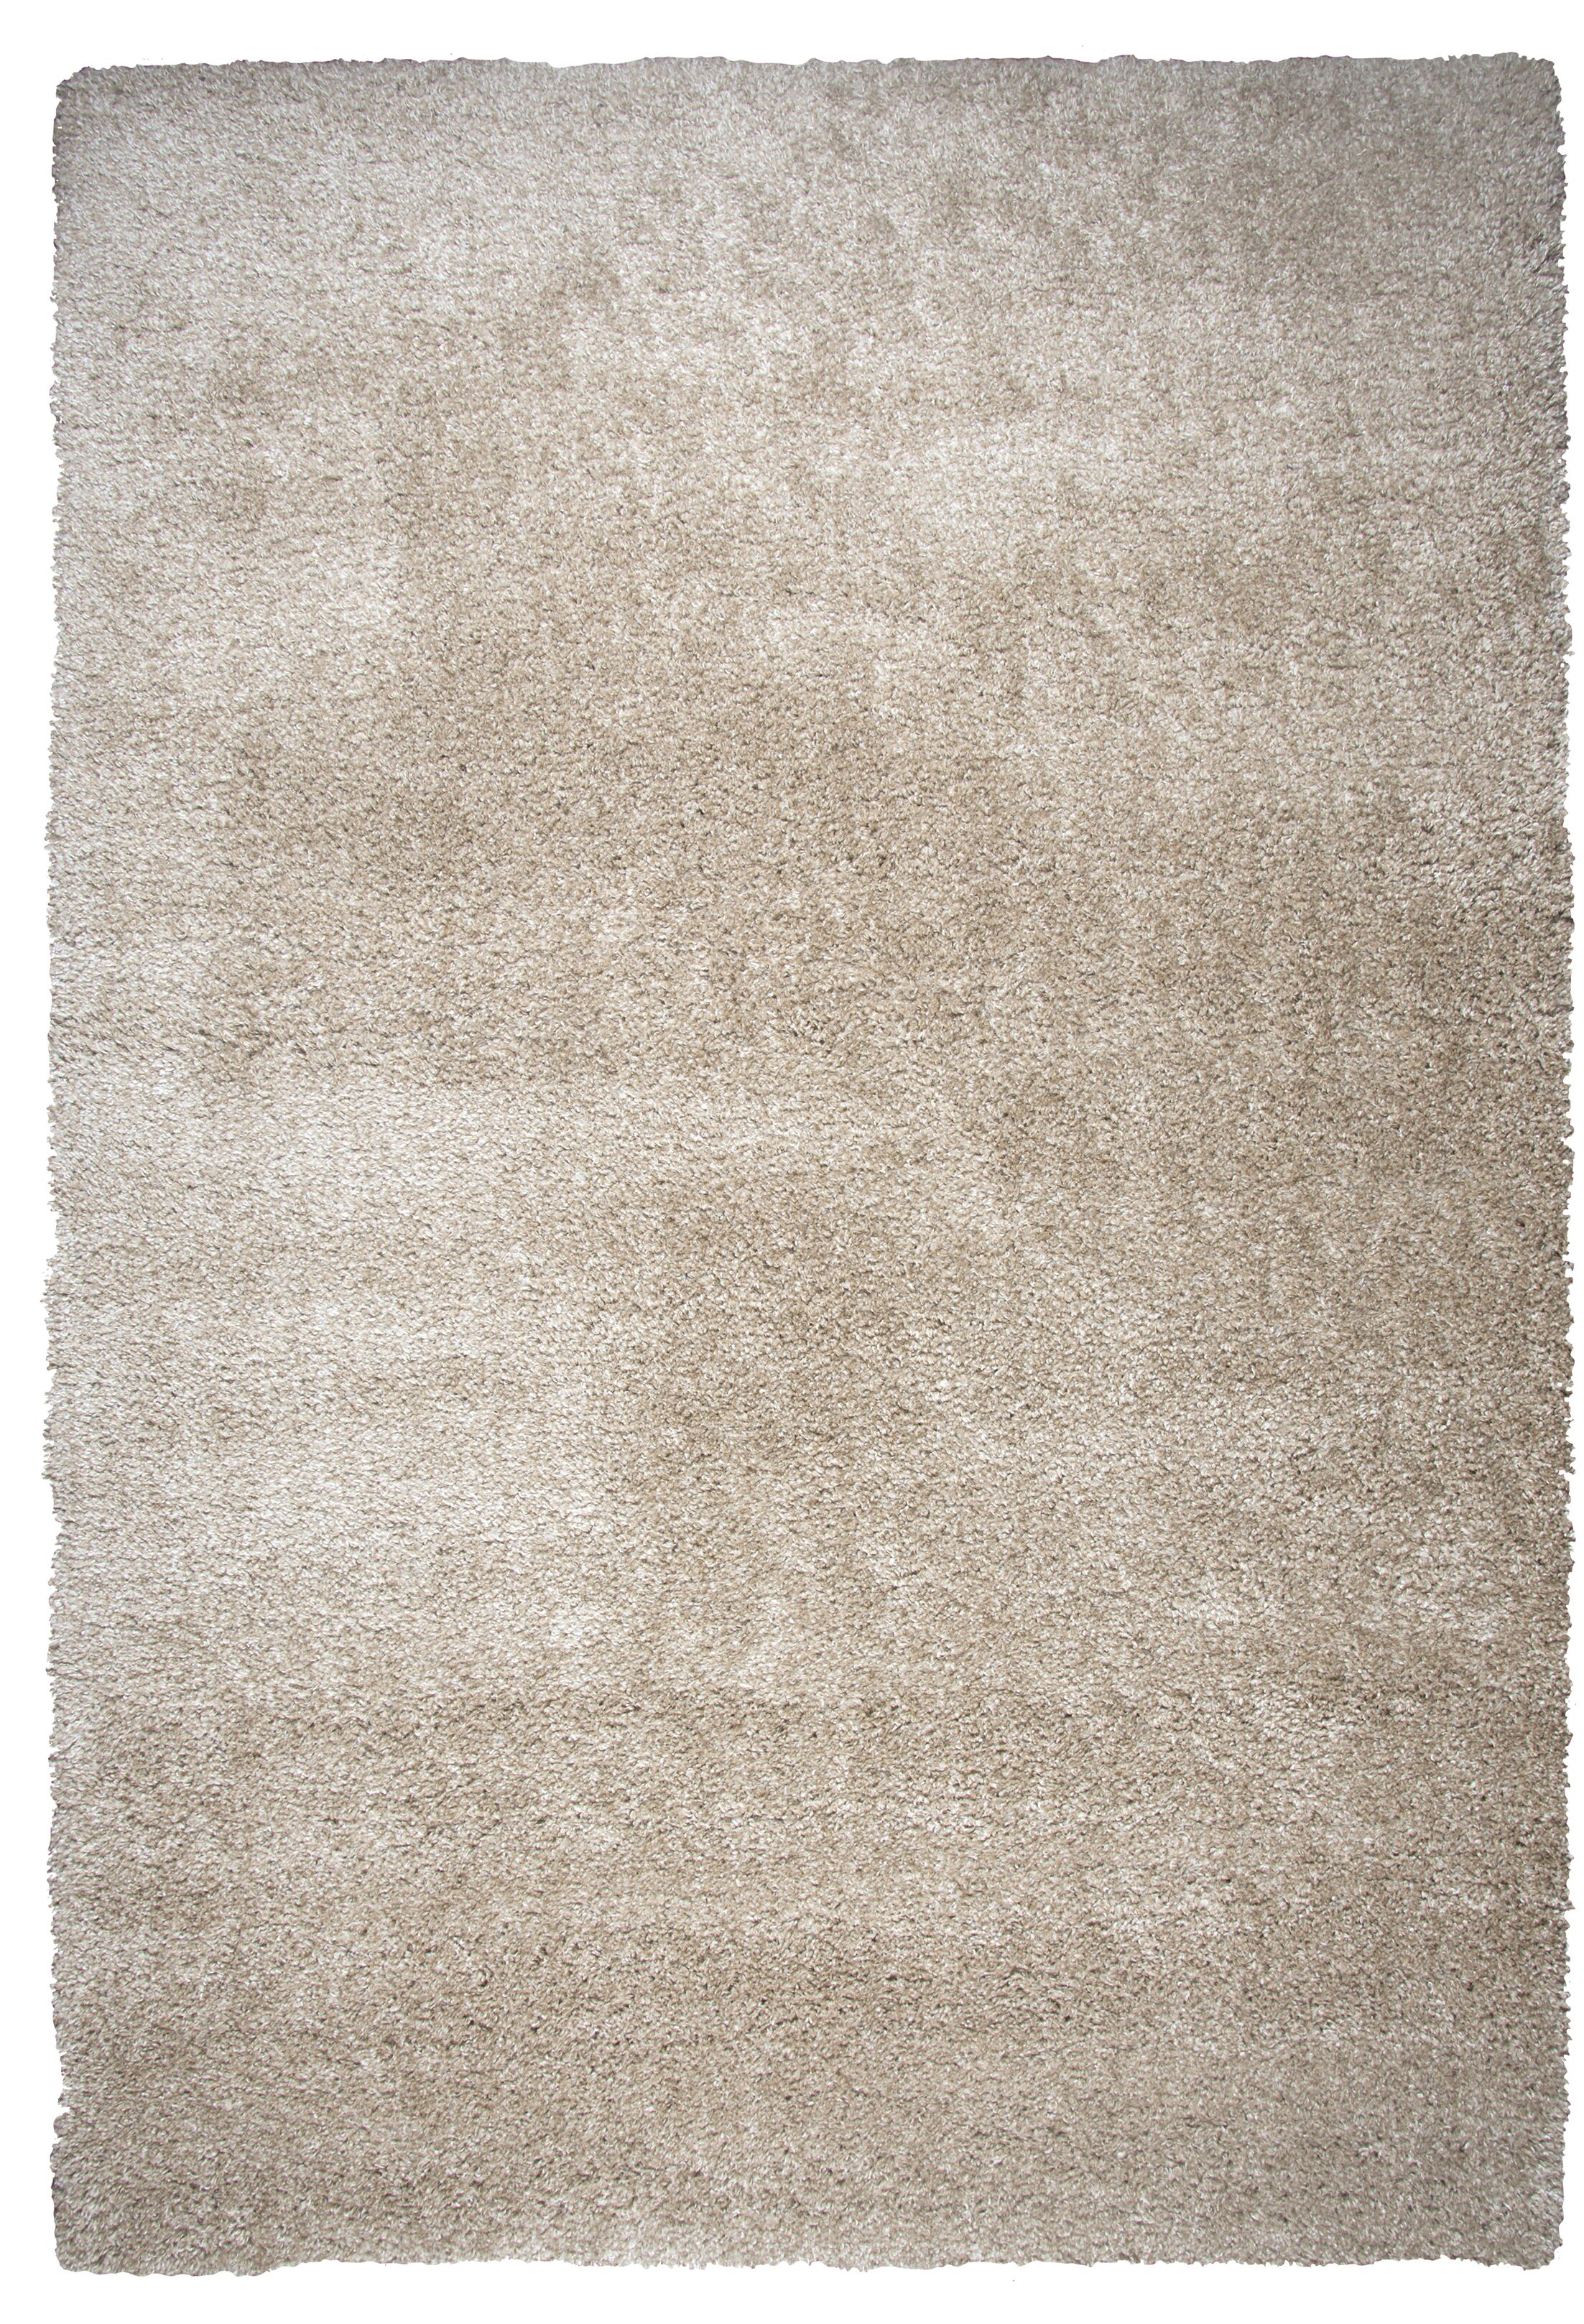 Thalia Beige Shag Area Rug Rug Size: Rectangle 5'3